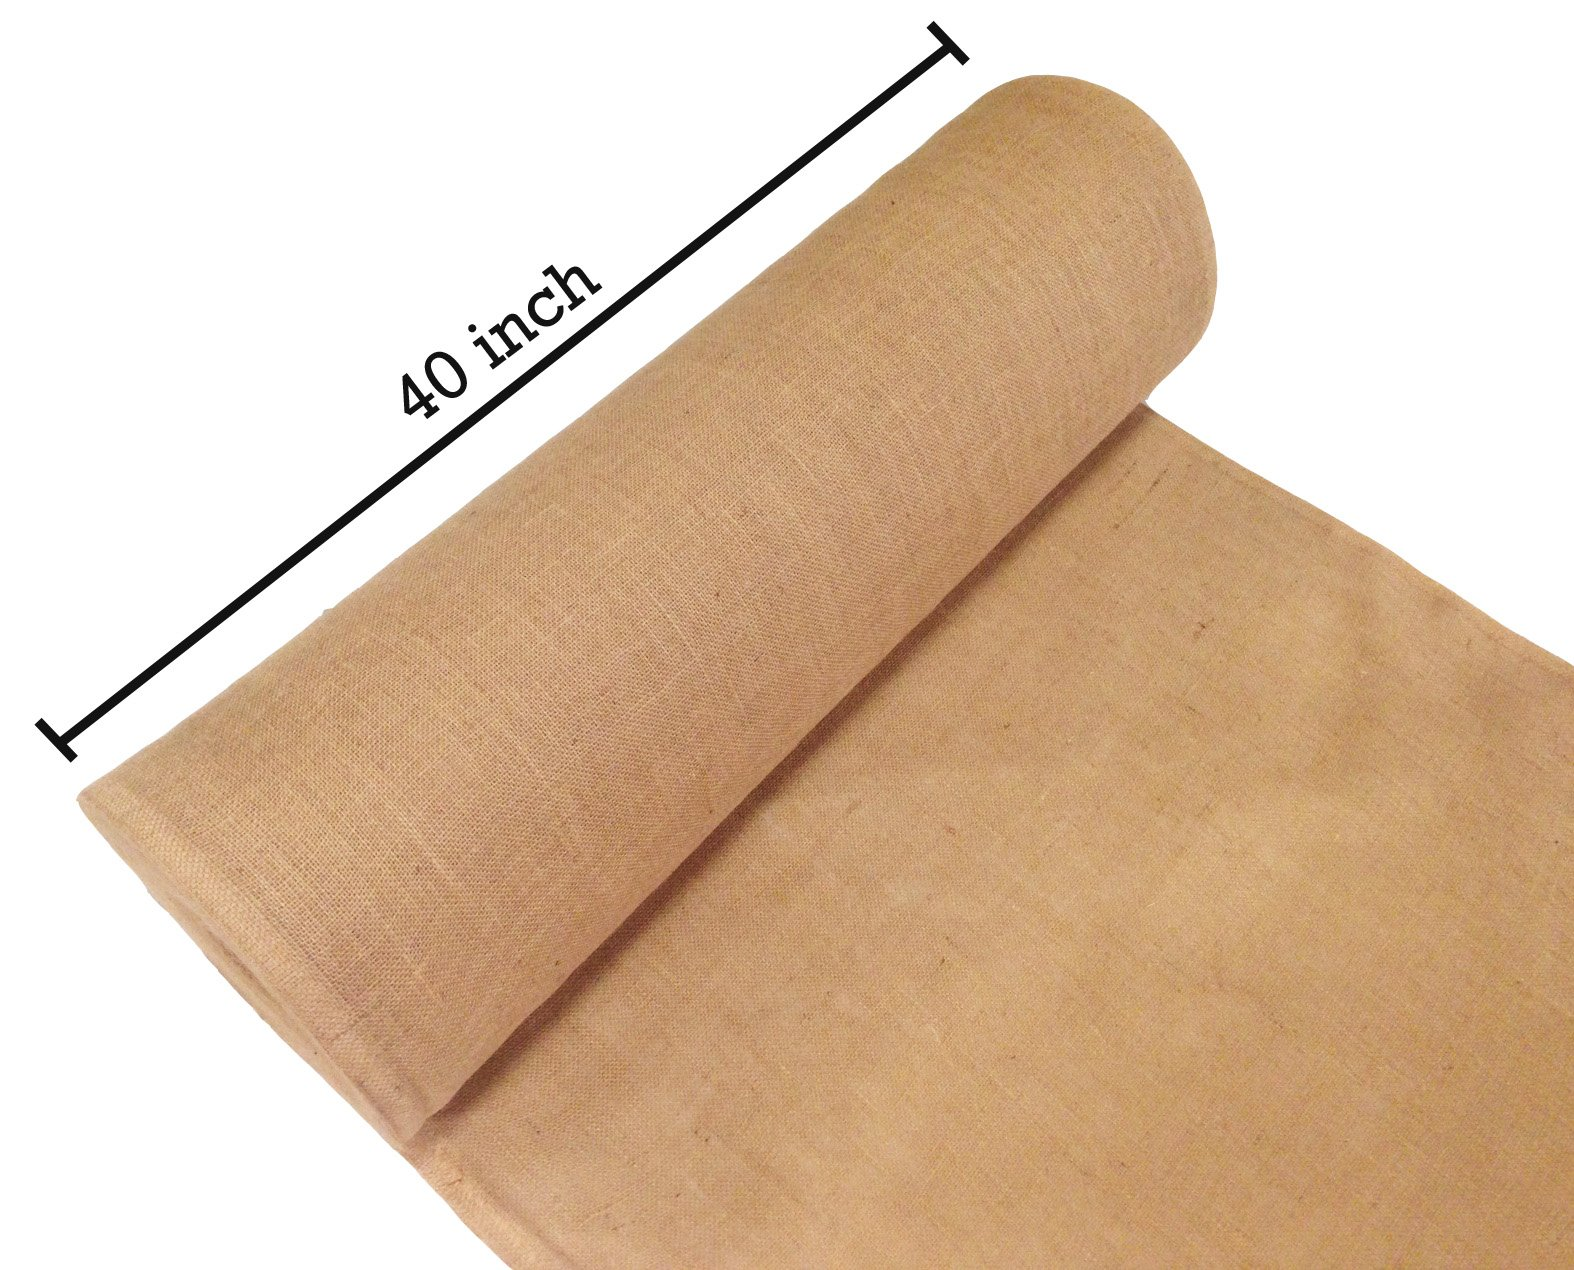 Sandbaggy Burlap Fabric Roll- for Garden, Yard, Wedding, Craft, Decorating Tables - 40 inch x 300 ft (1) by Sandbaggy (Image #3)